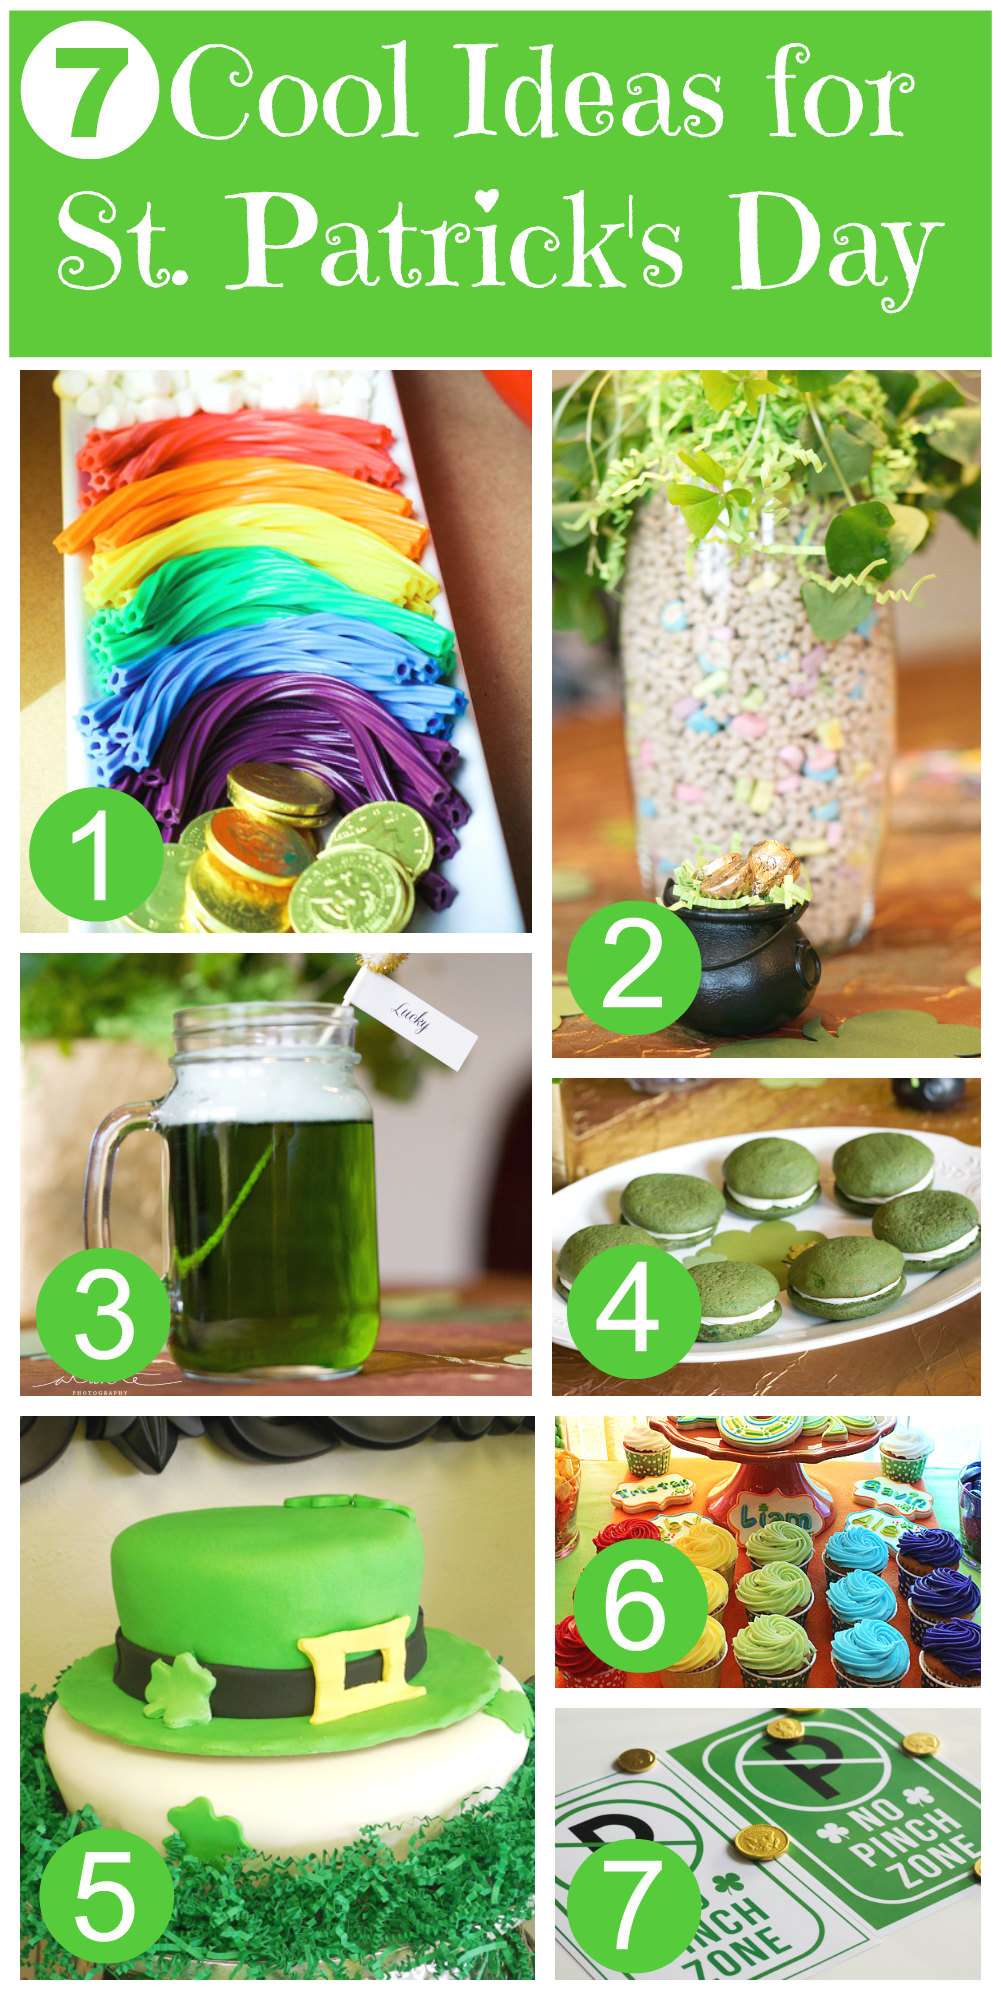 7 Cool Party Ideas For St. Patrick's Day!